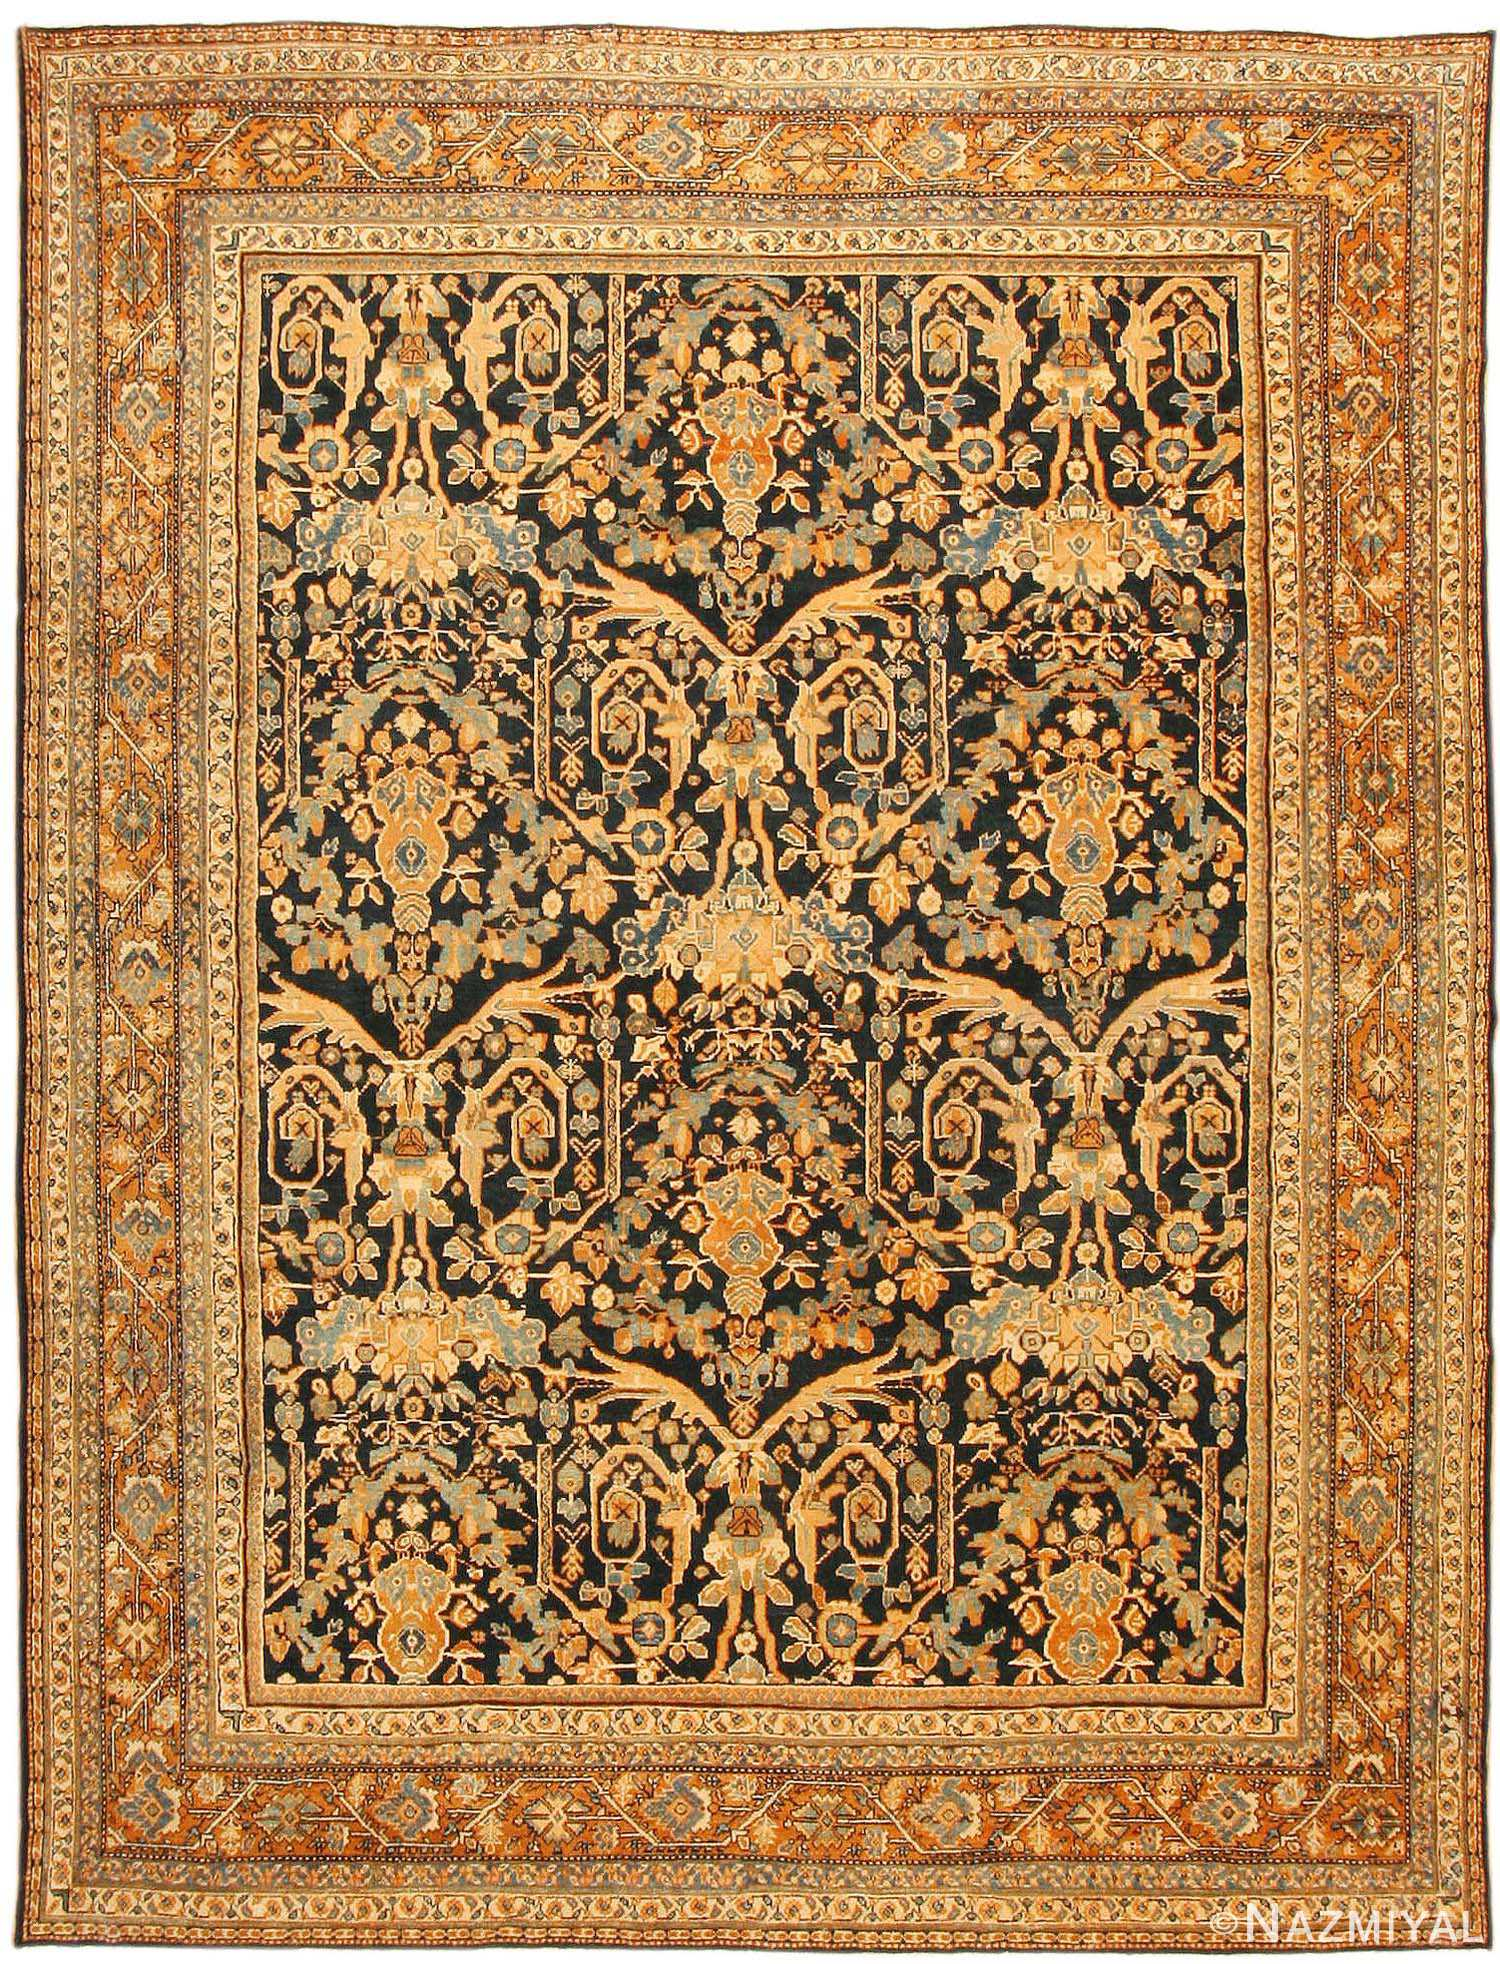 sultanabad rug antique sultanabad carpet persian rugs